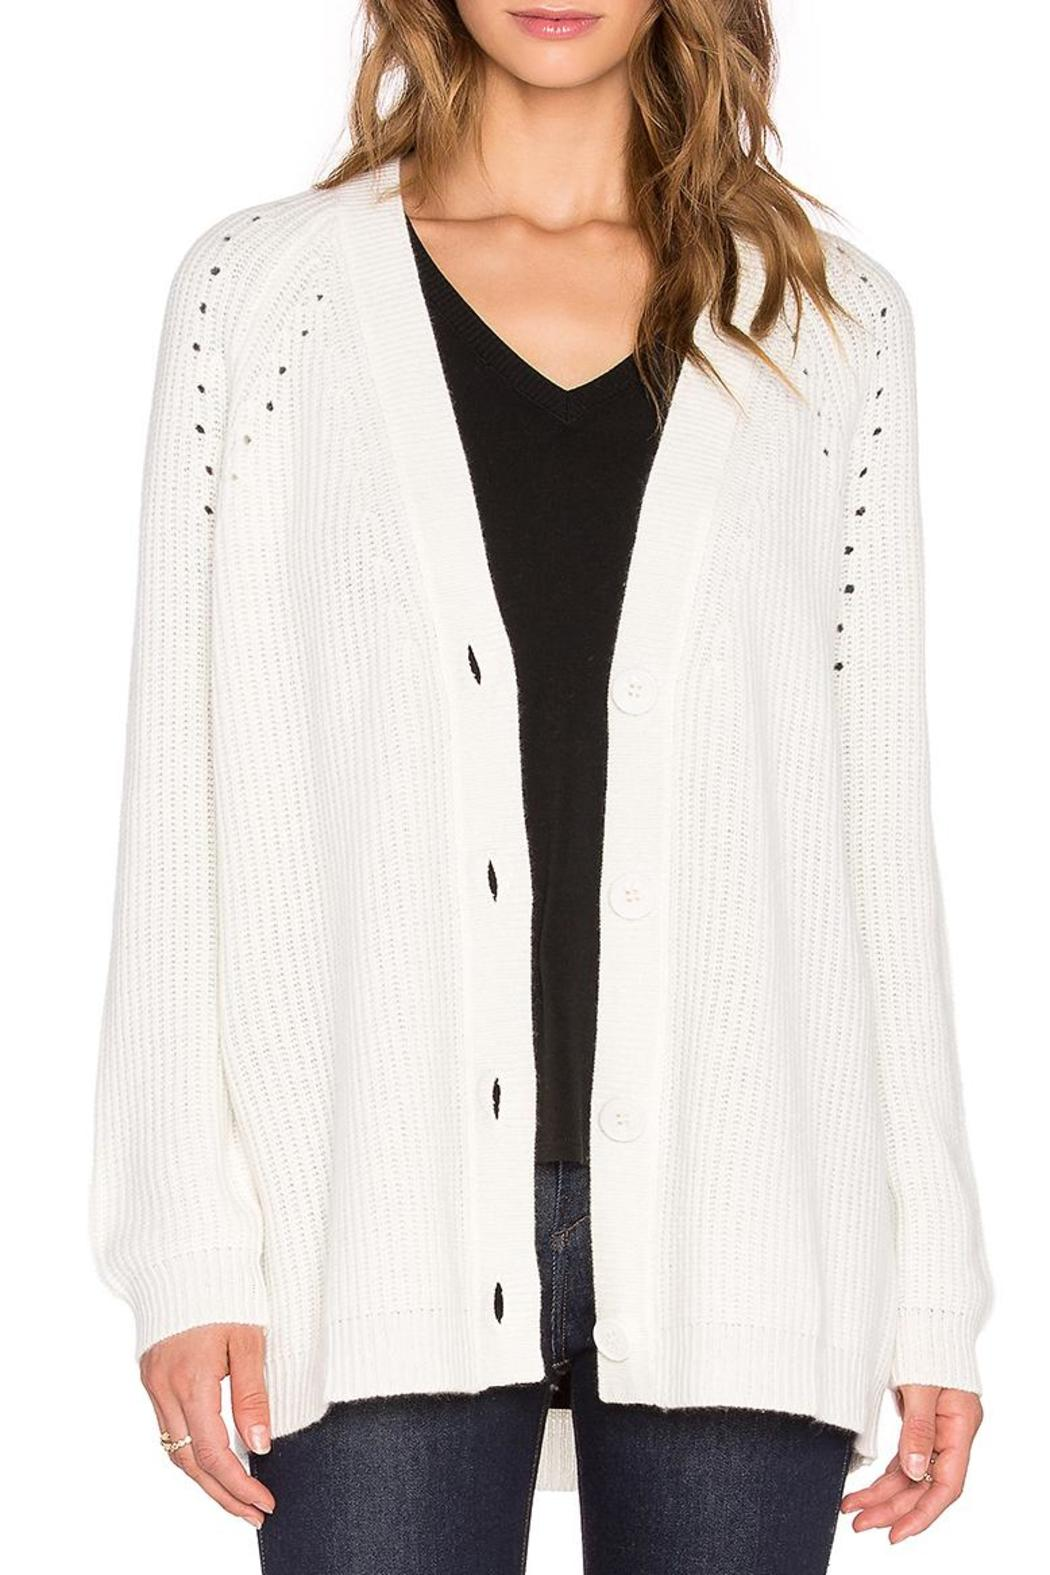 Fine Collection Cashmere Cardigan from Toronto by La Boutique ...